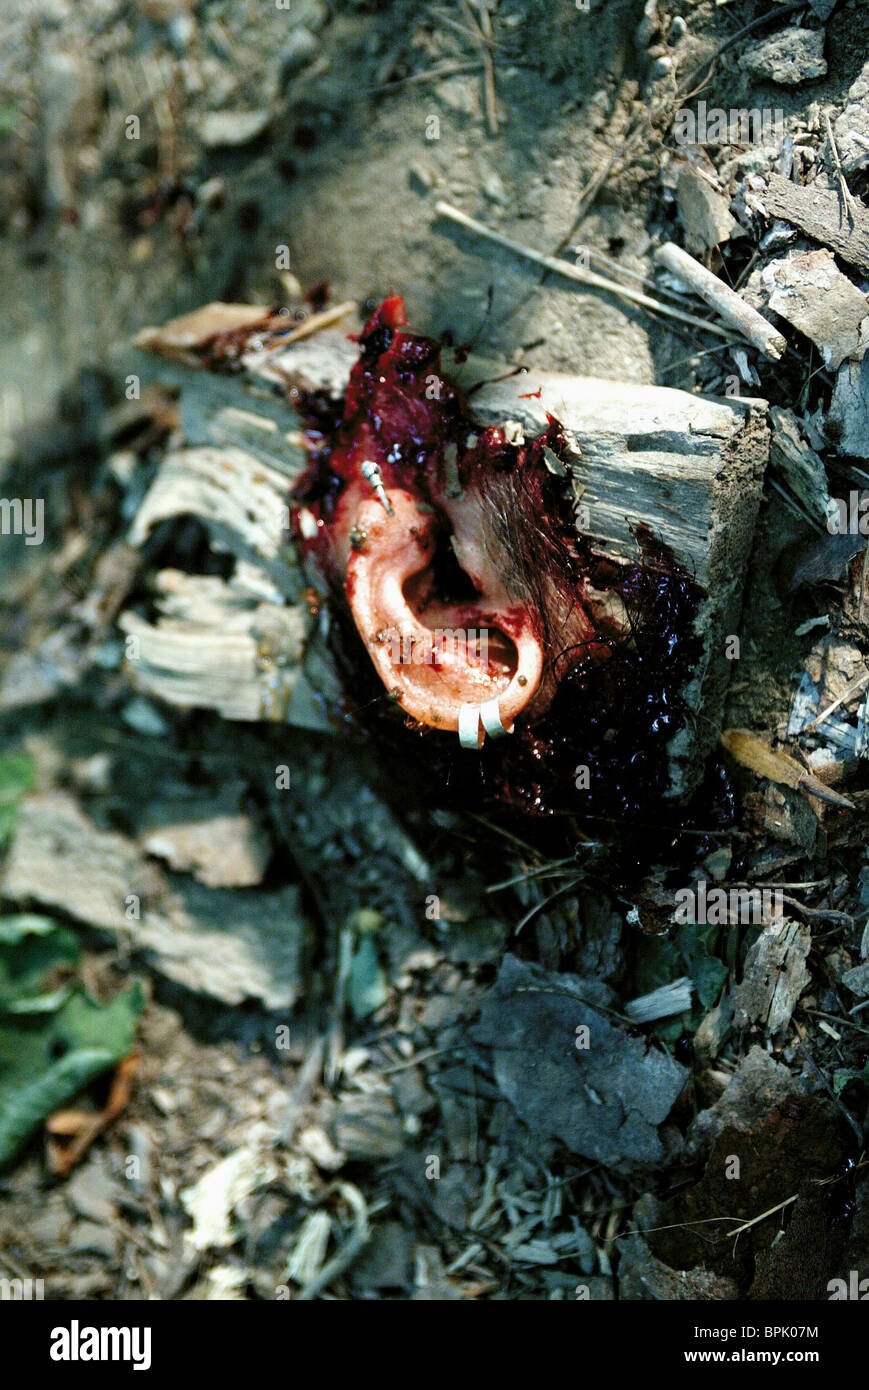 SEVERED EAR WRONG TURN (2003) - Stock Image